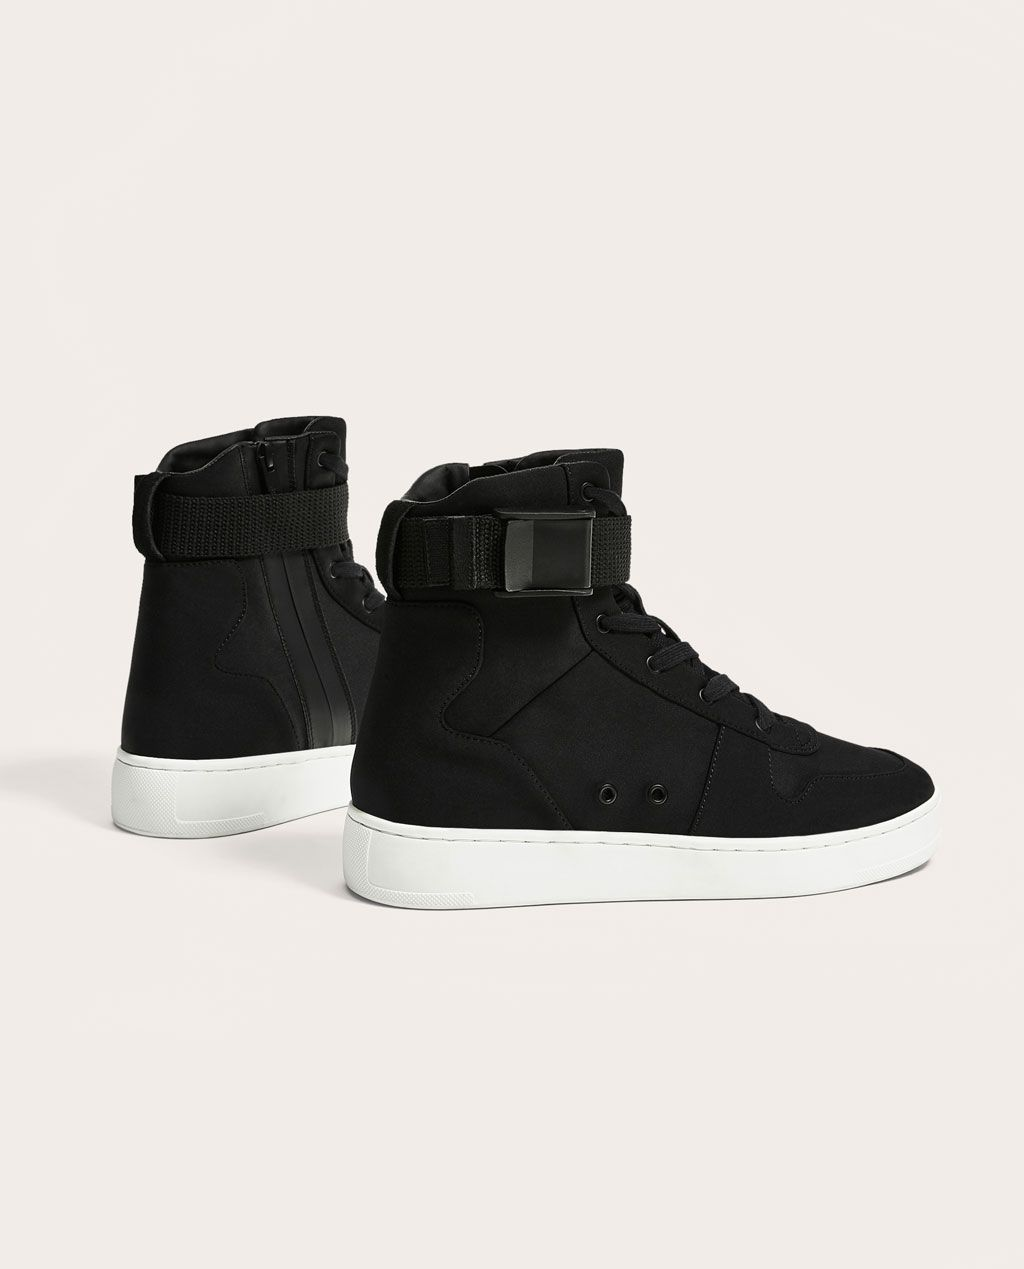 b16263b9eaa35a BLACK HIGH TOP SNEAKERS-View all-SHOES-MAN